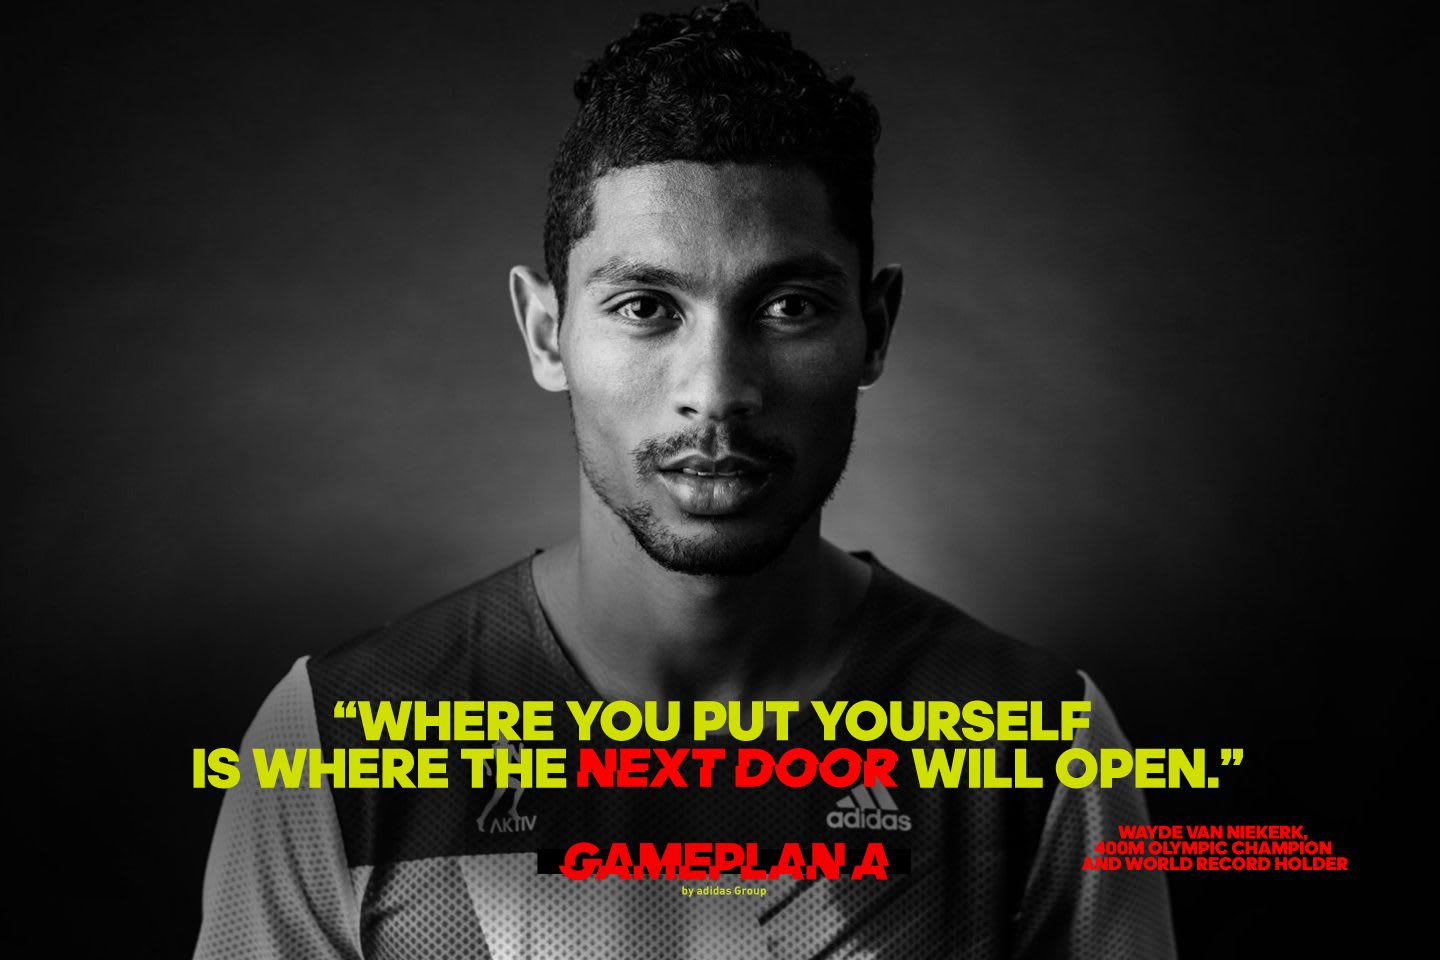 wayde van niekerk olympic champion quote